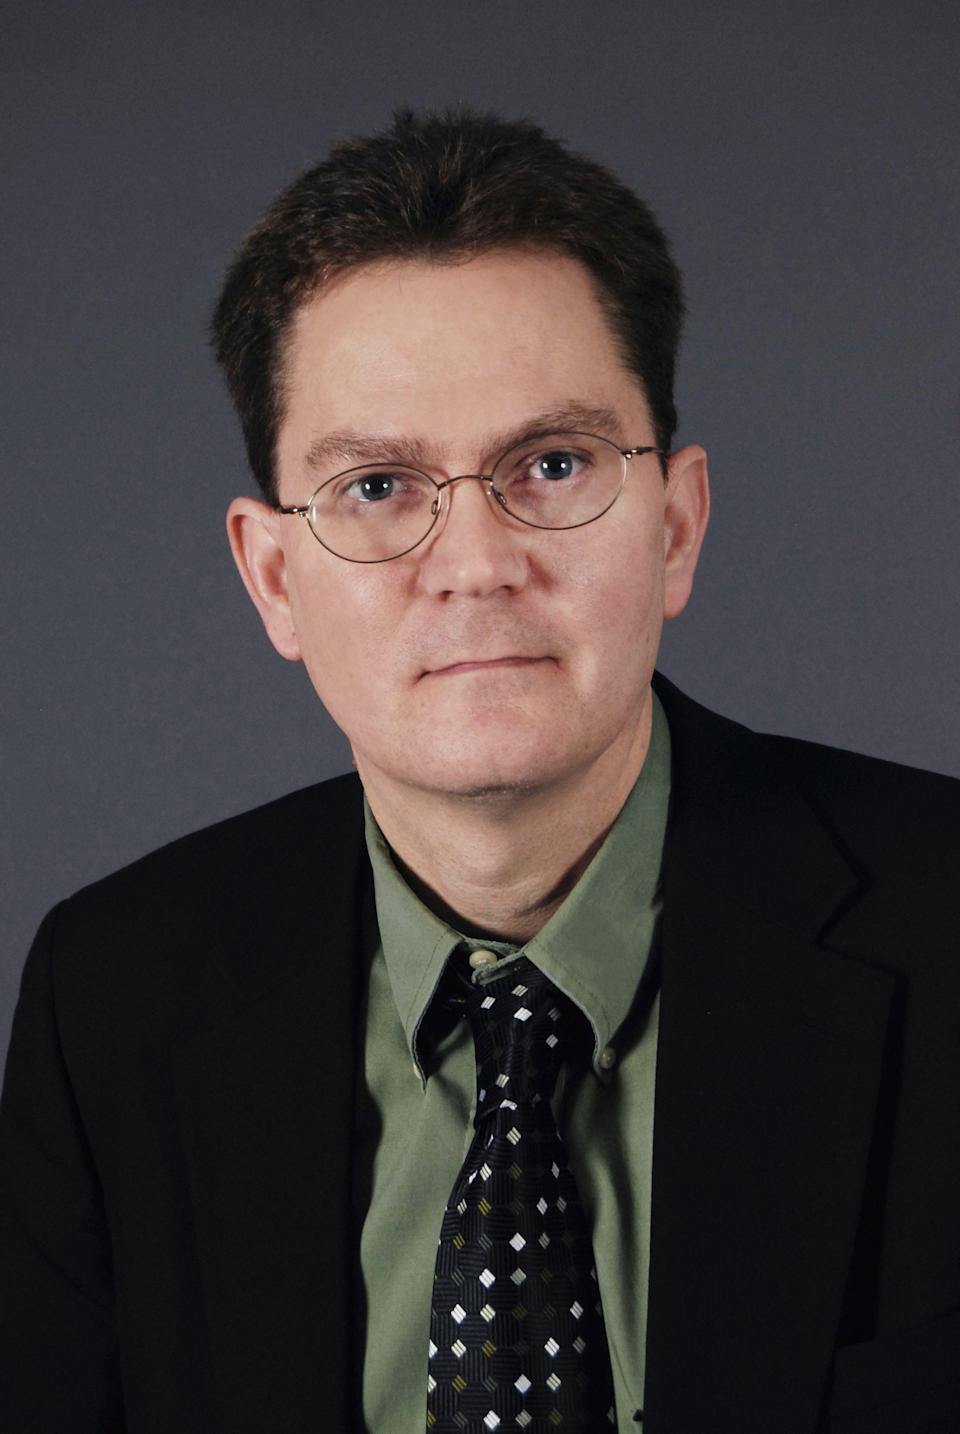 Victor Vieth is the former executive director of the National Child Protection Training Center.